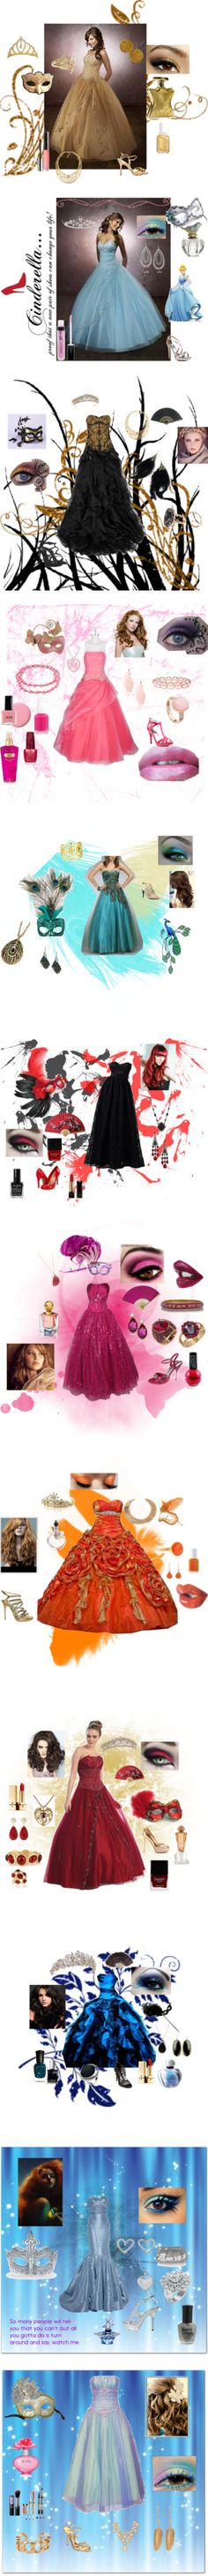 """Masquerade Ball Outfits"" by jgirl101 ❤ liked on Polyvore"